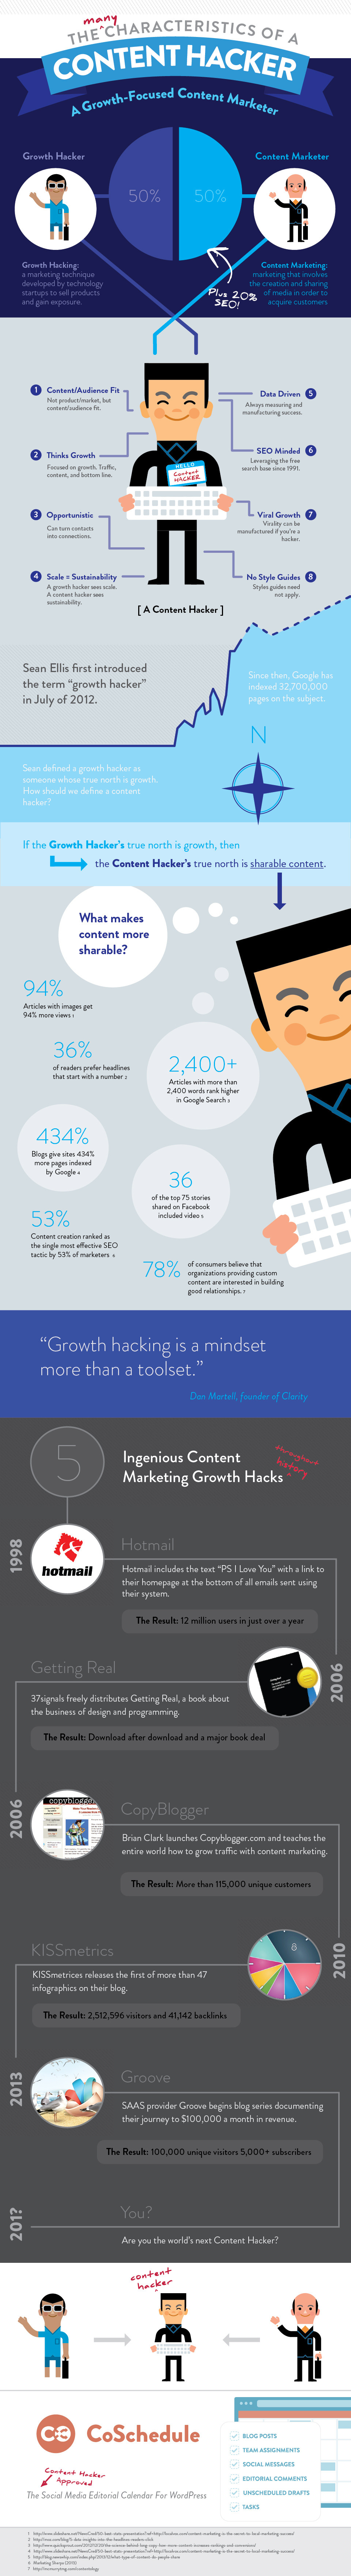 Content marketing and the growth hacking - infographic